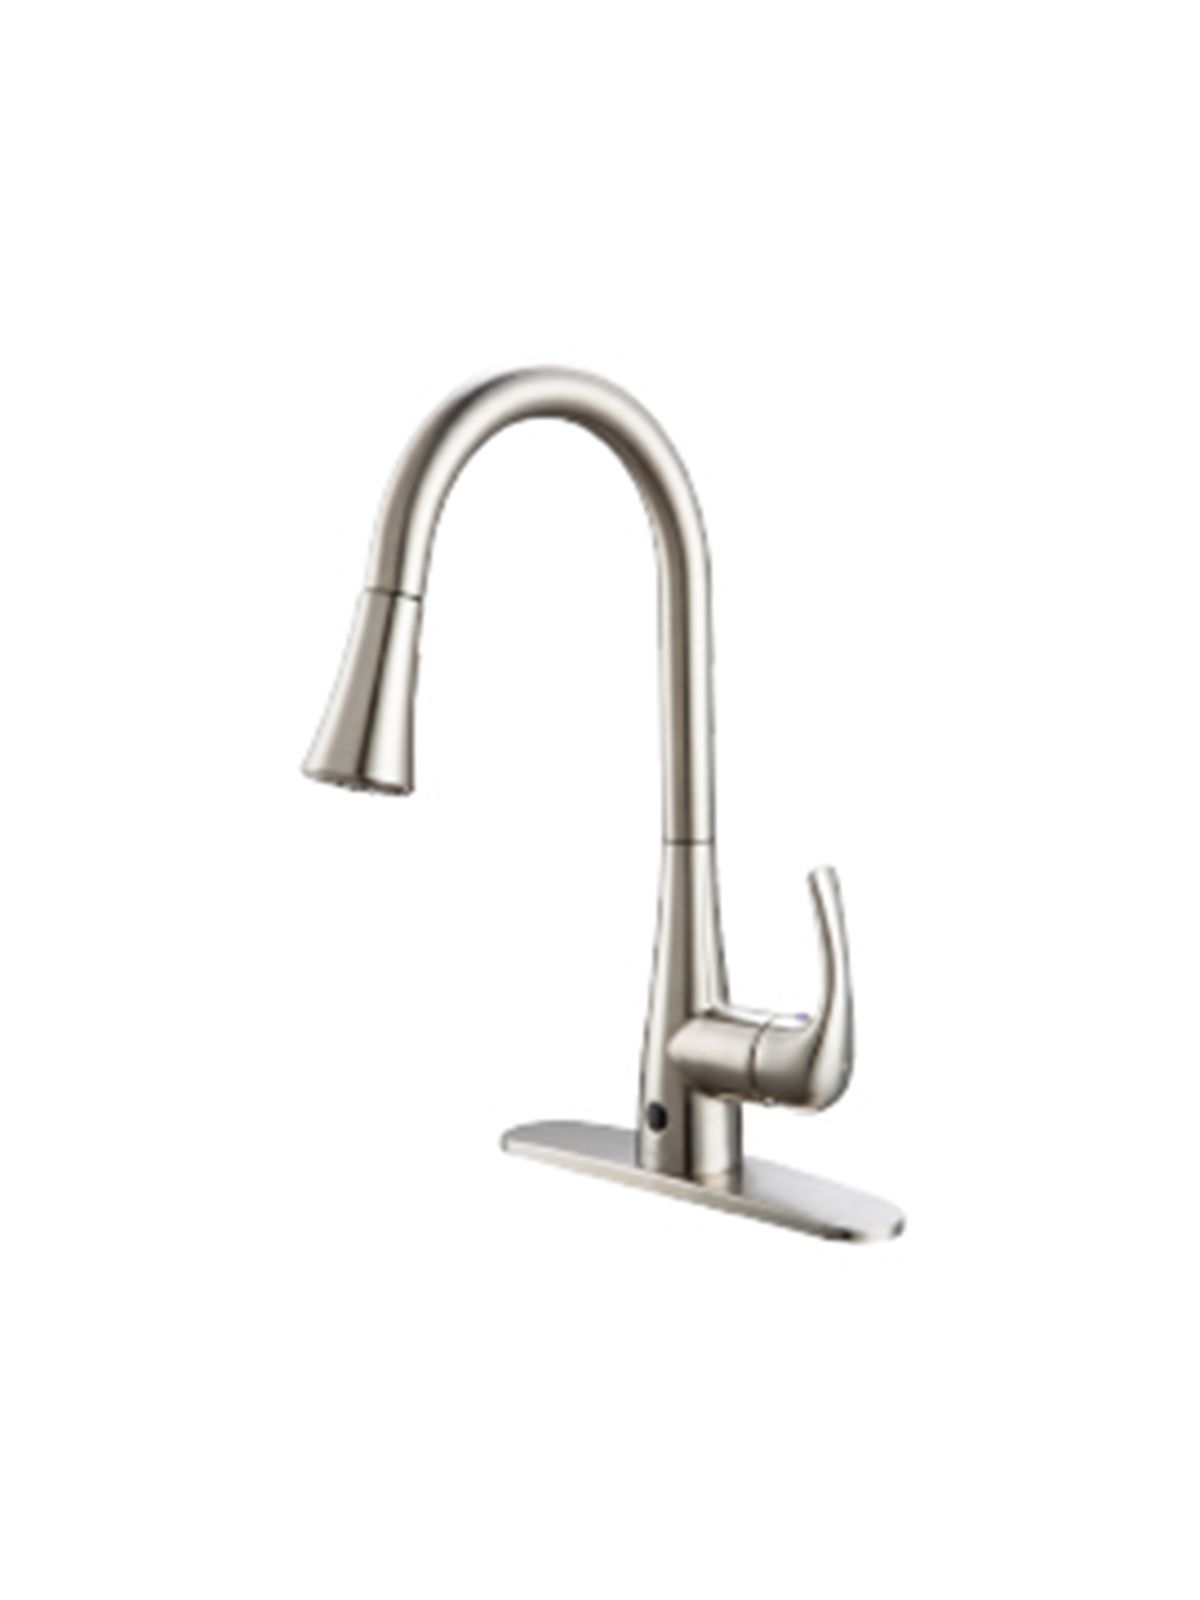 The Best Kitchen Faucets Under 250 That Look Much More Expensive